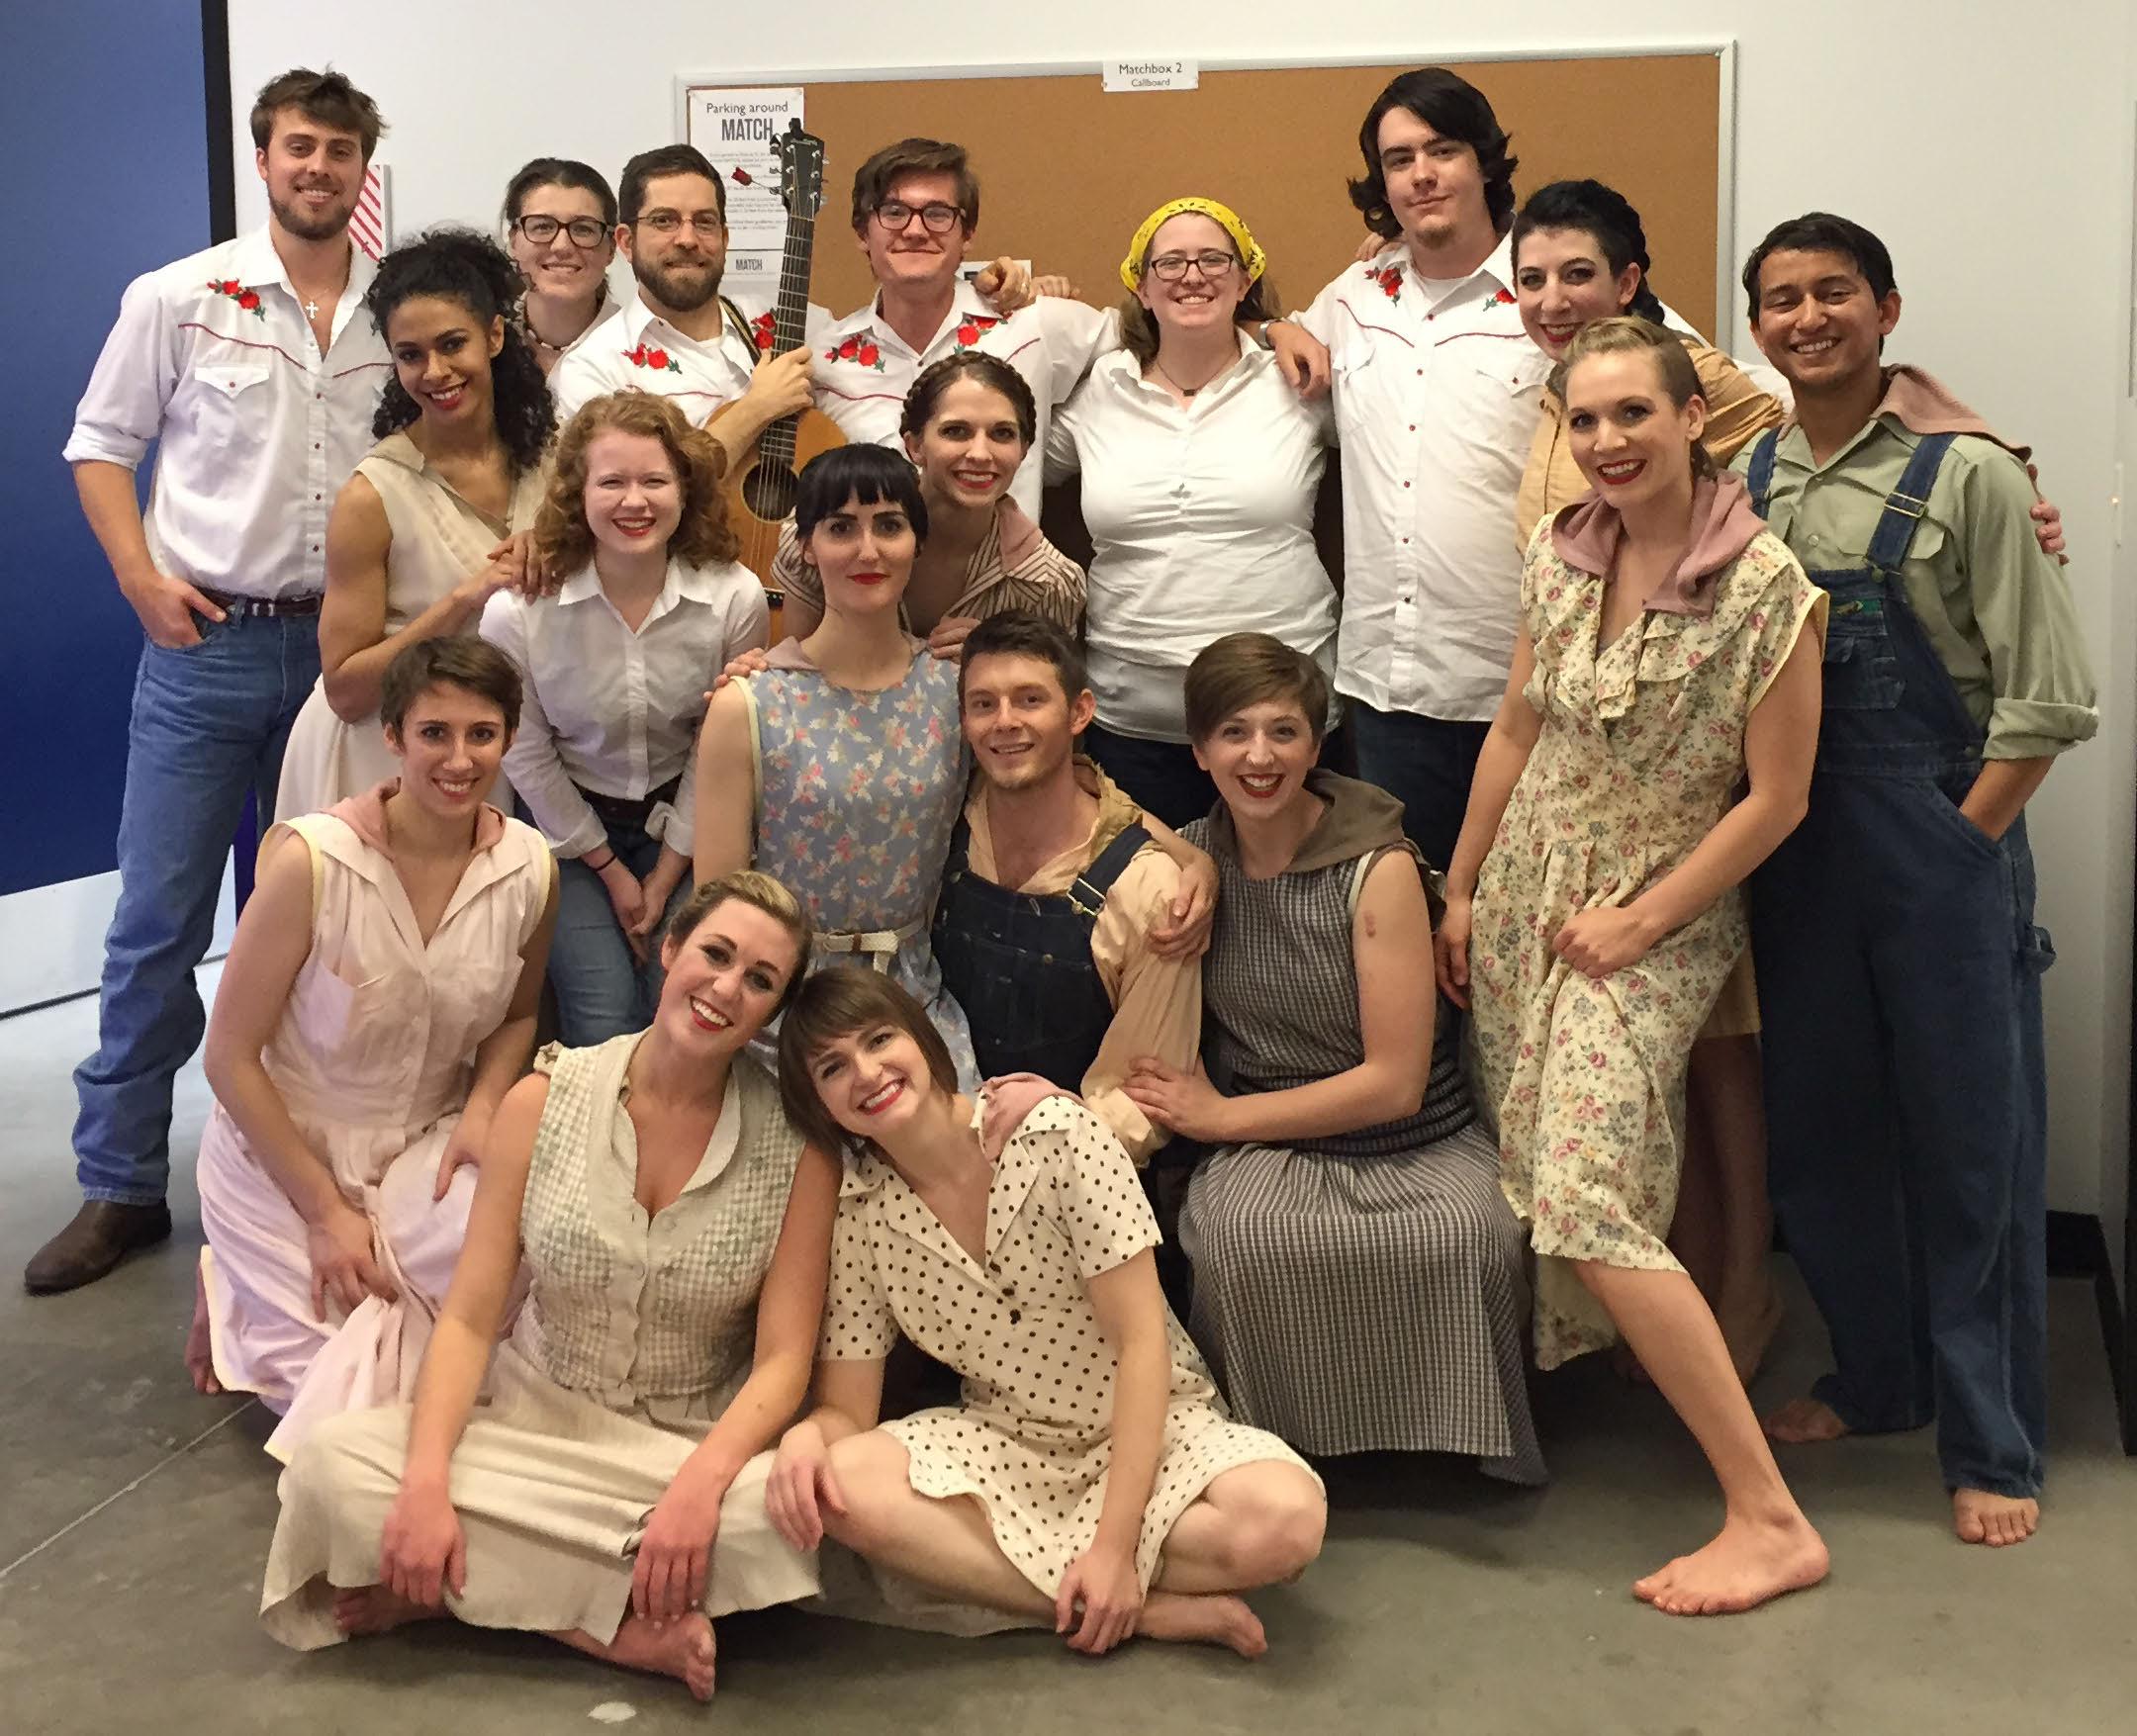 Cougar Roots alongside members of the Open Dance Project after their debut show together.